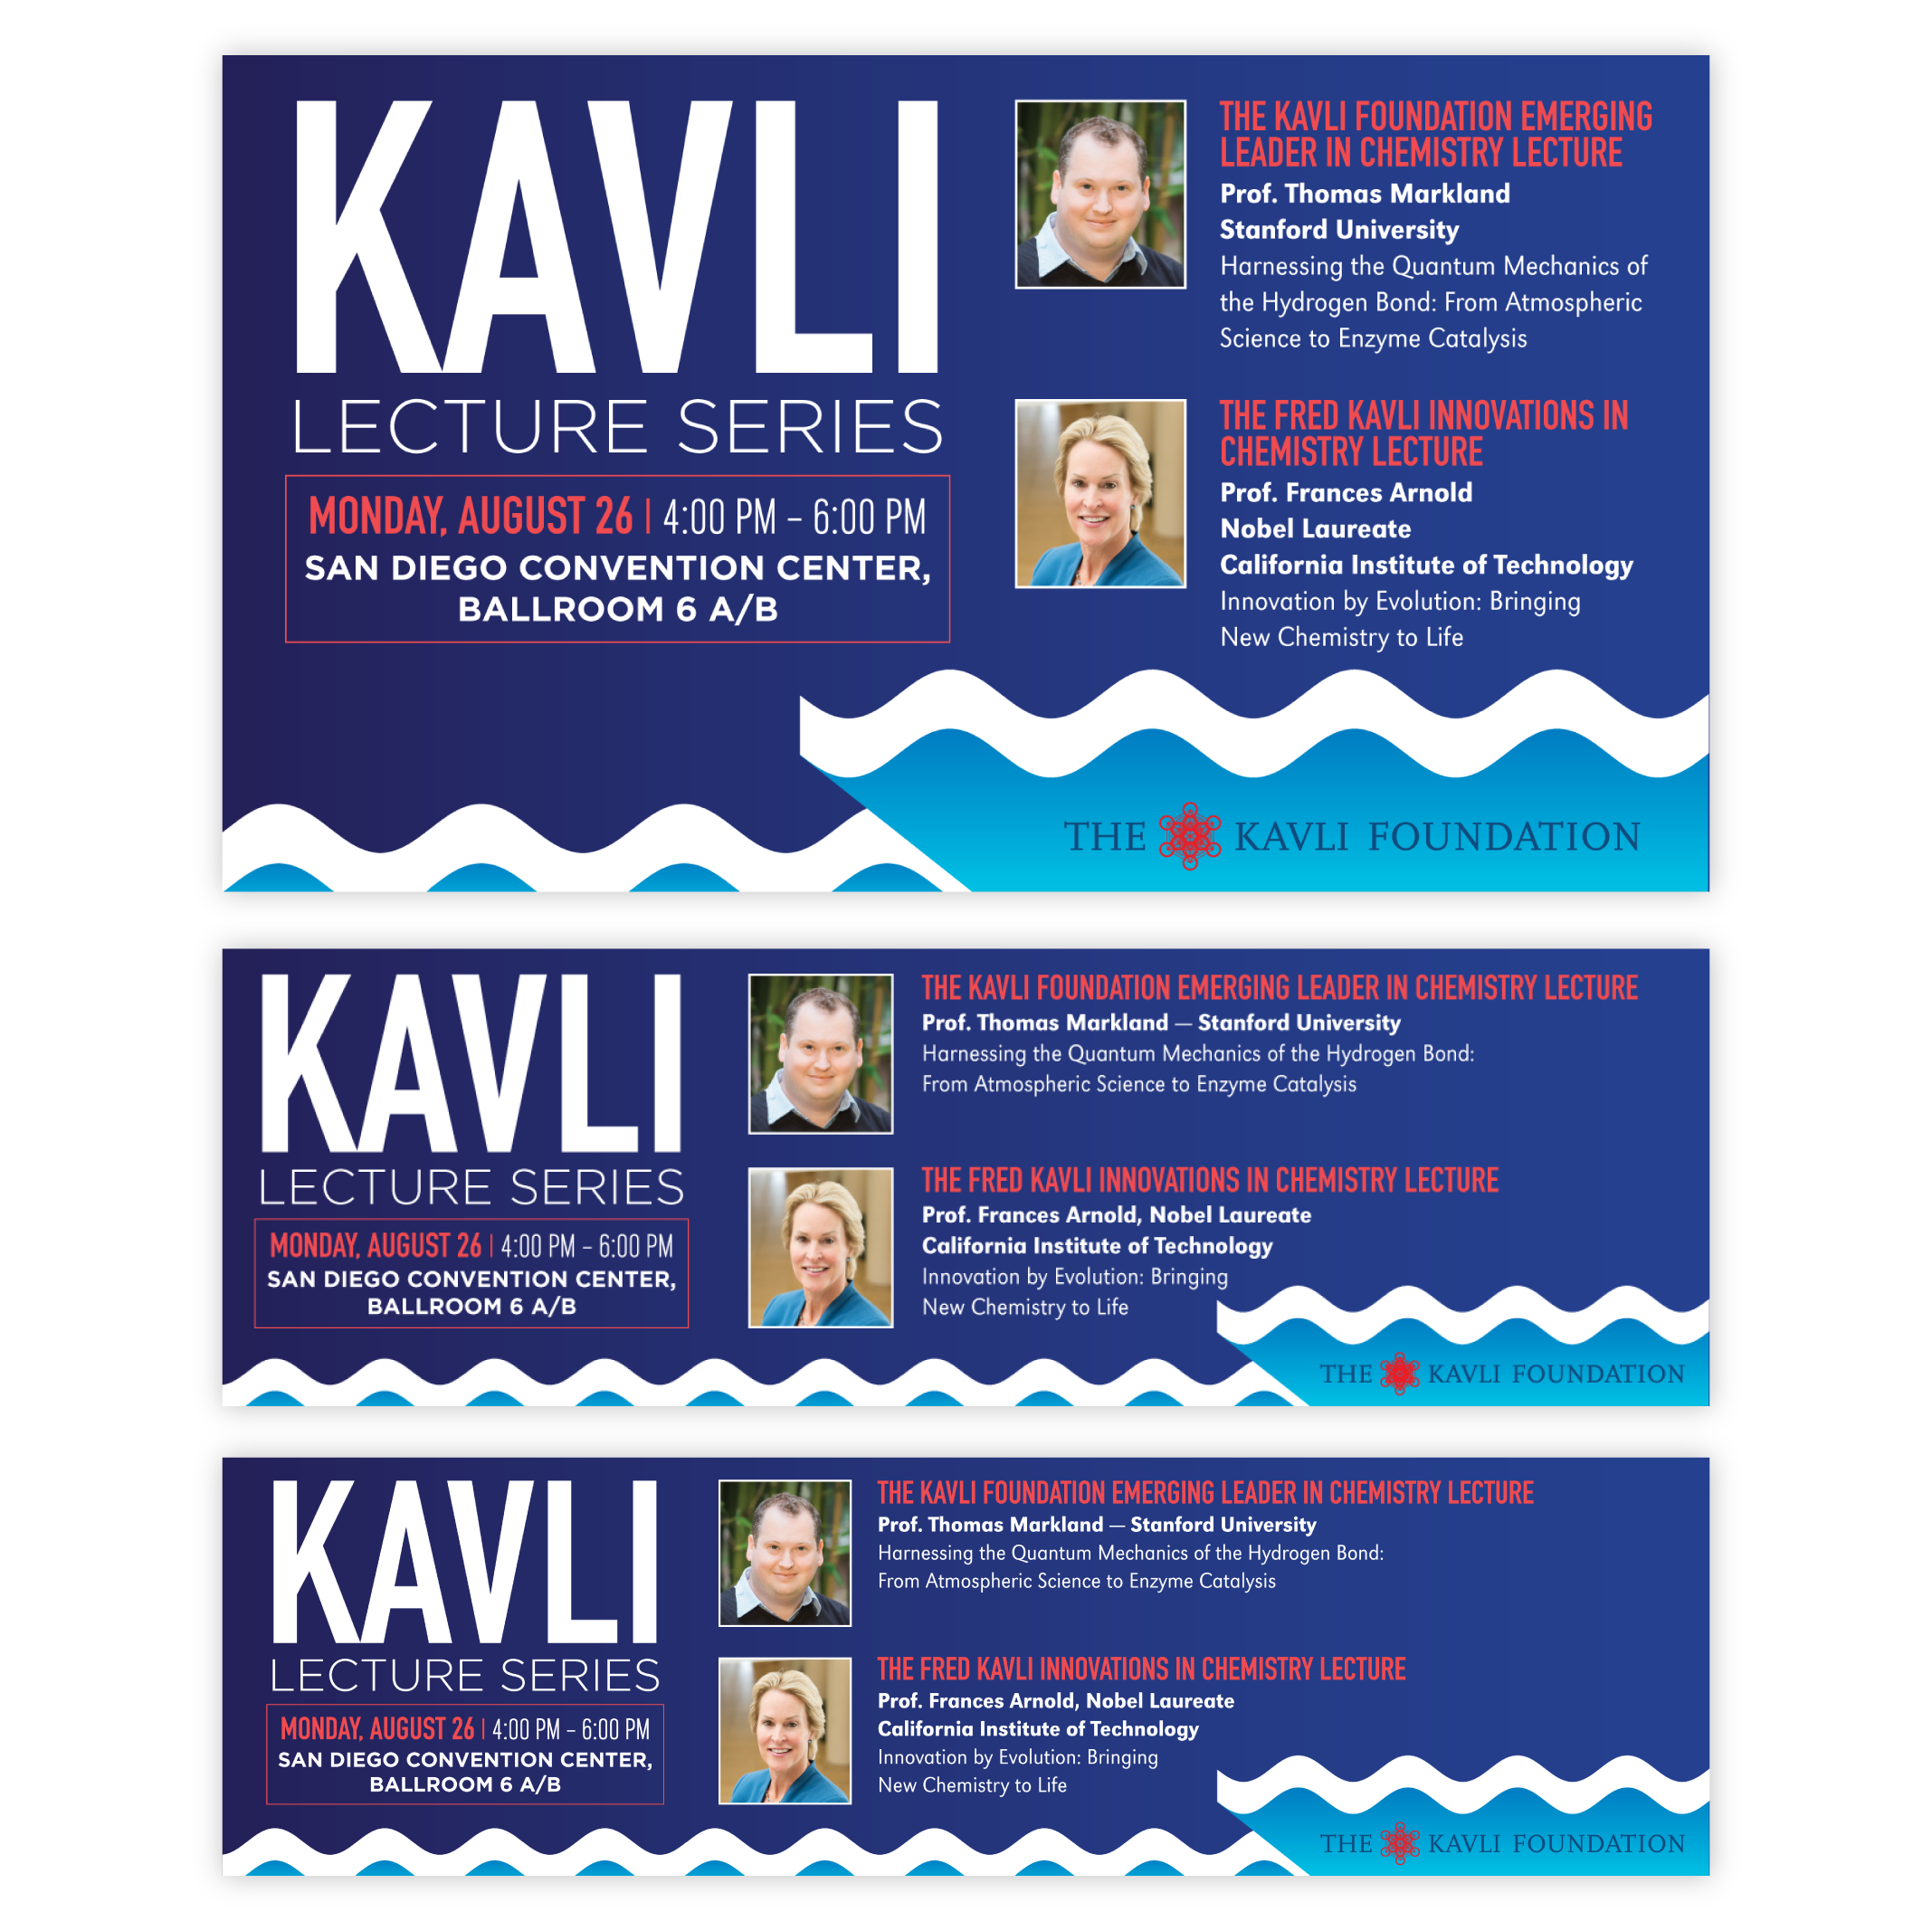 Kavli Lecture Series set of electronic signage.